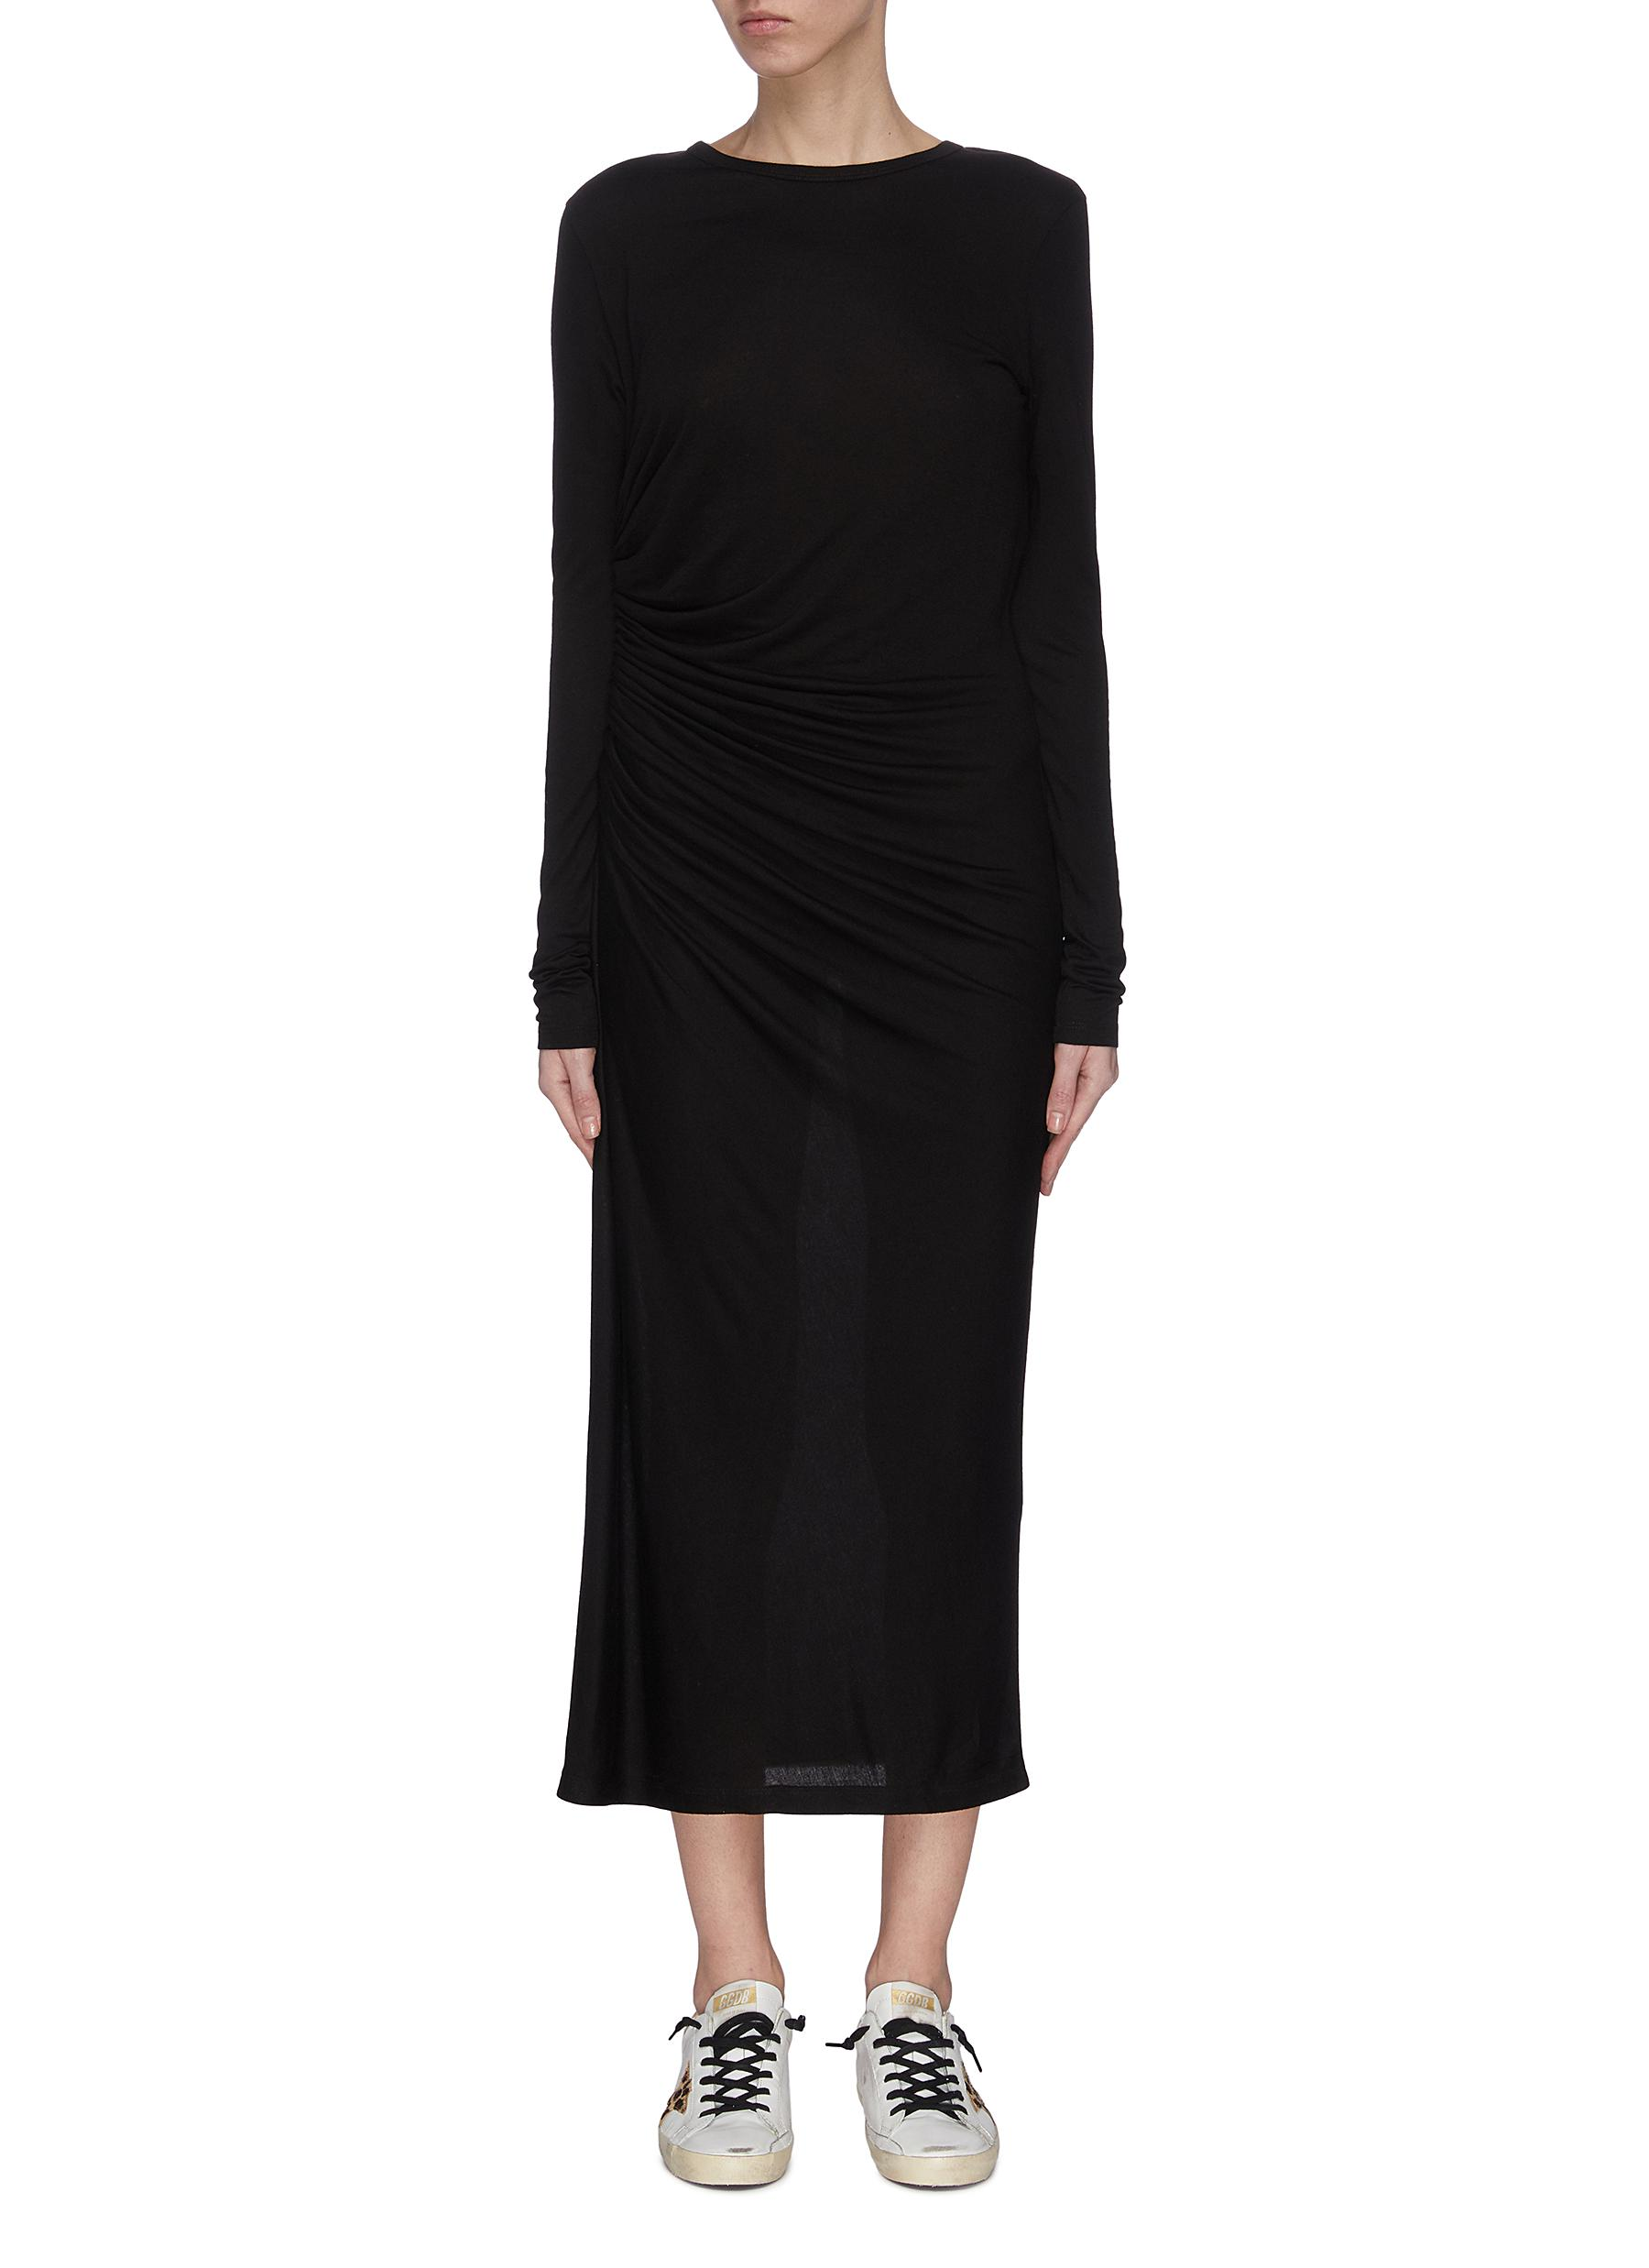 shop Ninety Percent 'Gauge and Tuck' single jersey dress online